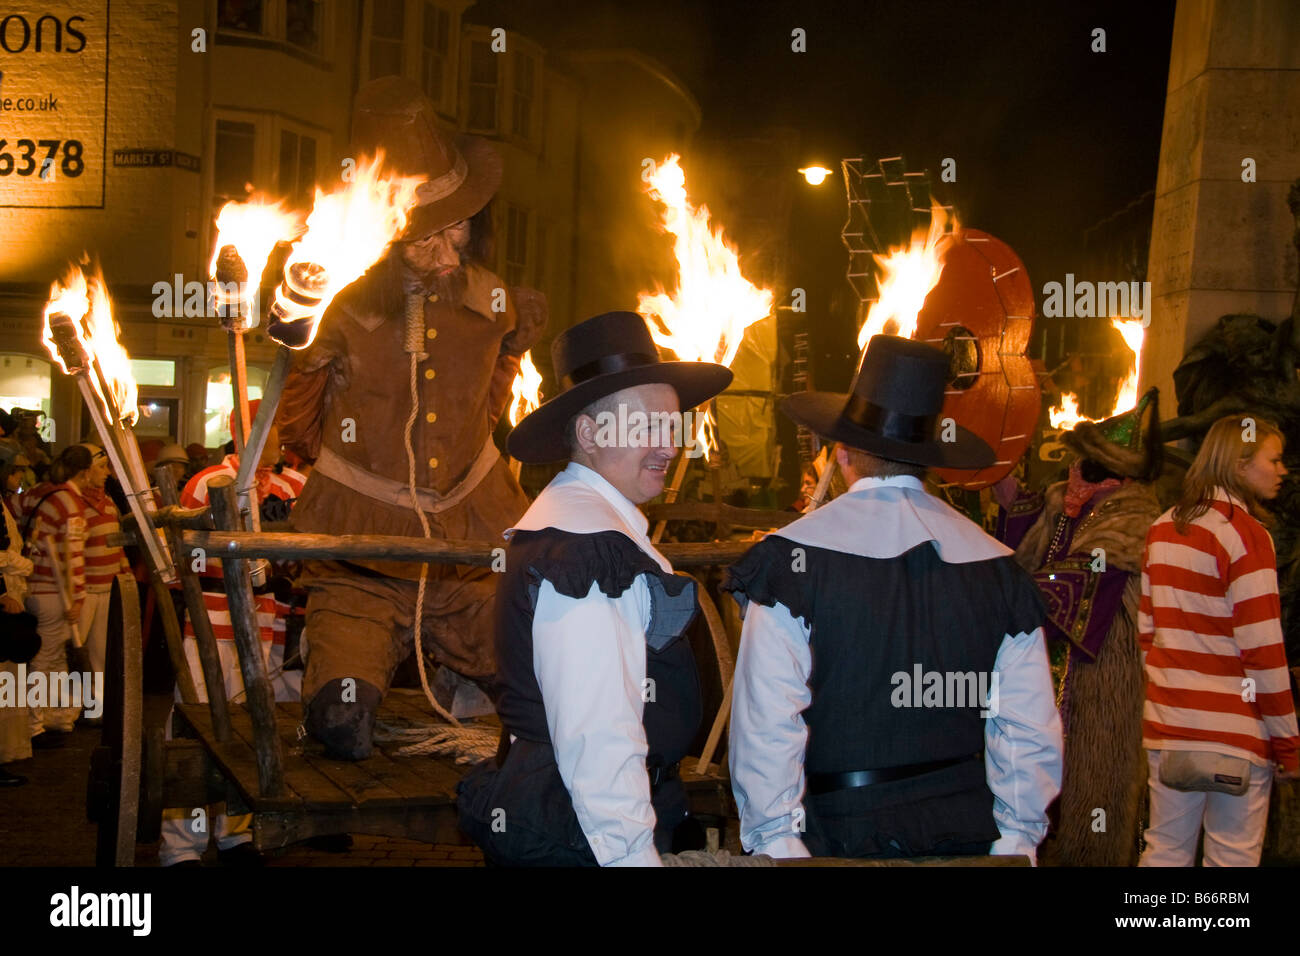 Guy Fawkes effigy on a cart with a noose around his neck. Lewes bonfire night, November 5th procession. - Stock Image